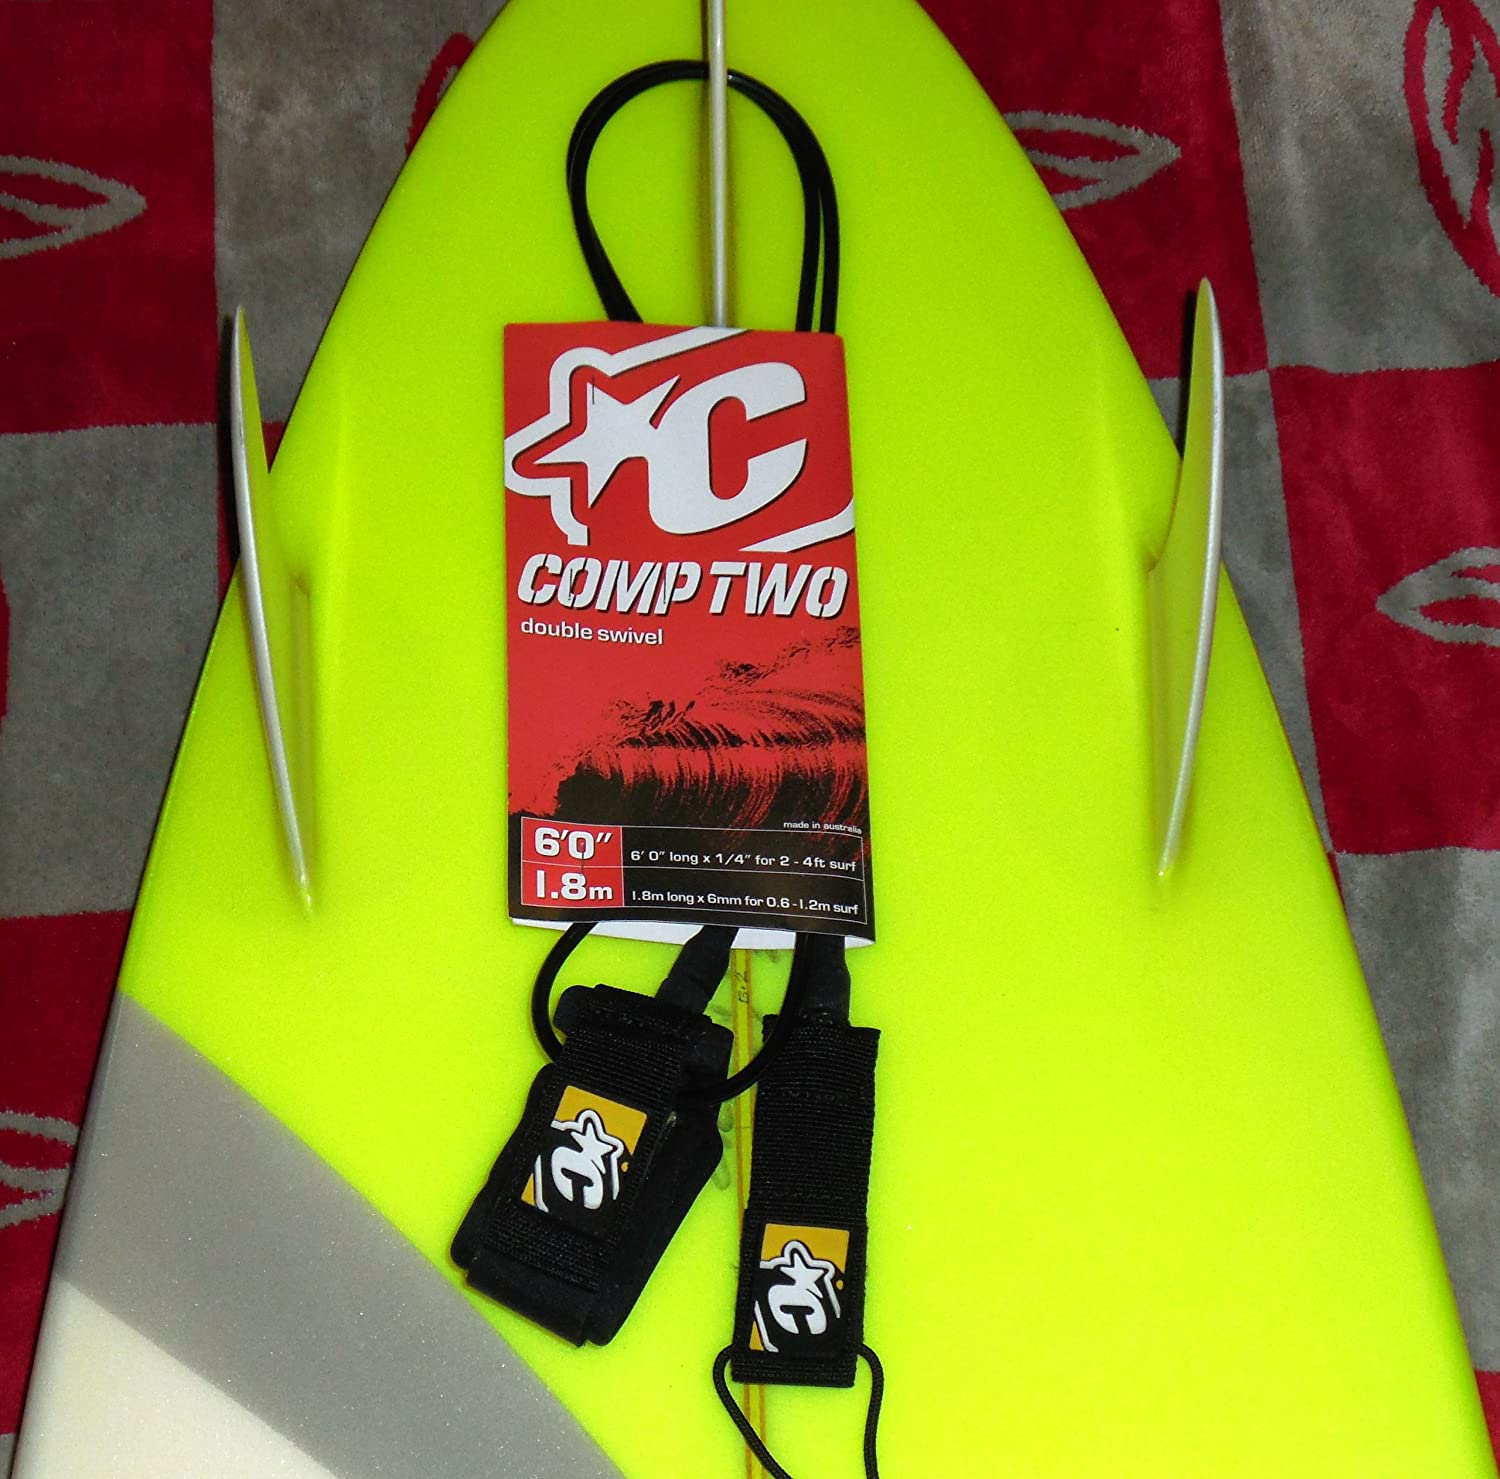 New Orleans Gifts Mall Creatures of Leisure Surfboard Leash - Le Two Comp Designed Team